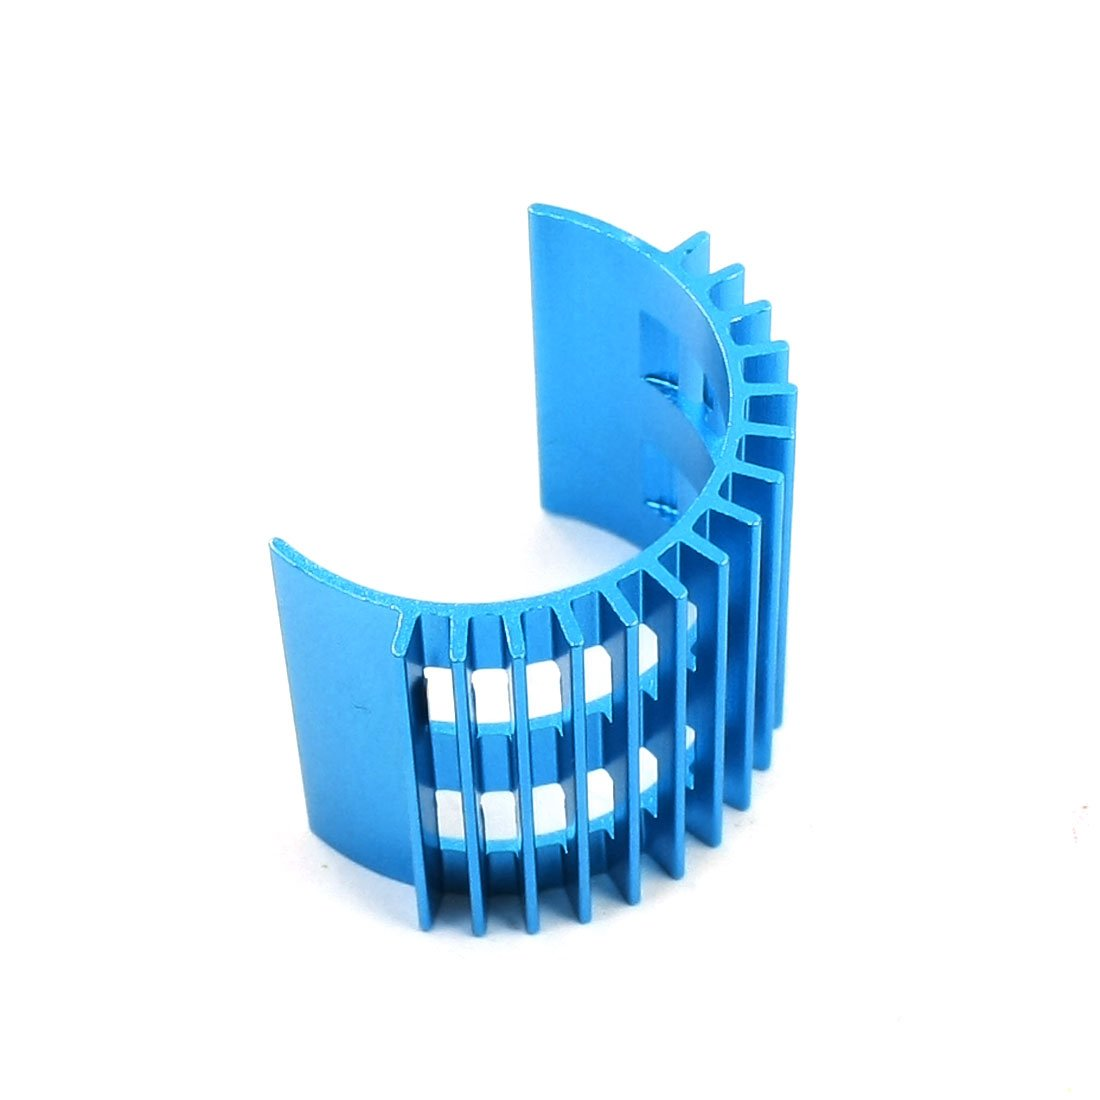 Heatsink Heat Diffuse 15 Fins Cooling Fin for 380 Motor 75 29 3 15 2mm pure copper radiator copper cooling fins copper fin can be diy longer heat sink radiactor fin coliing fin